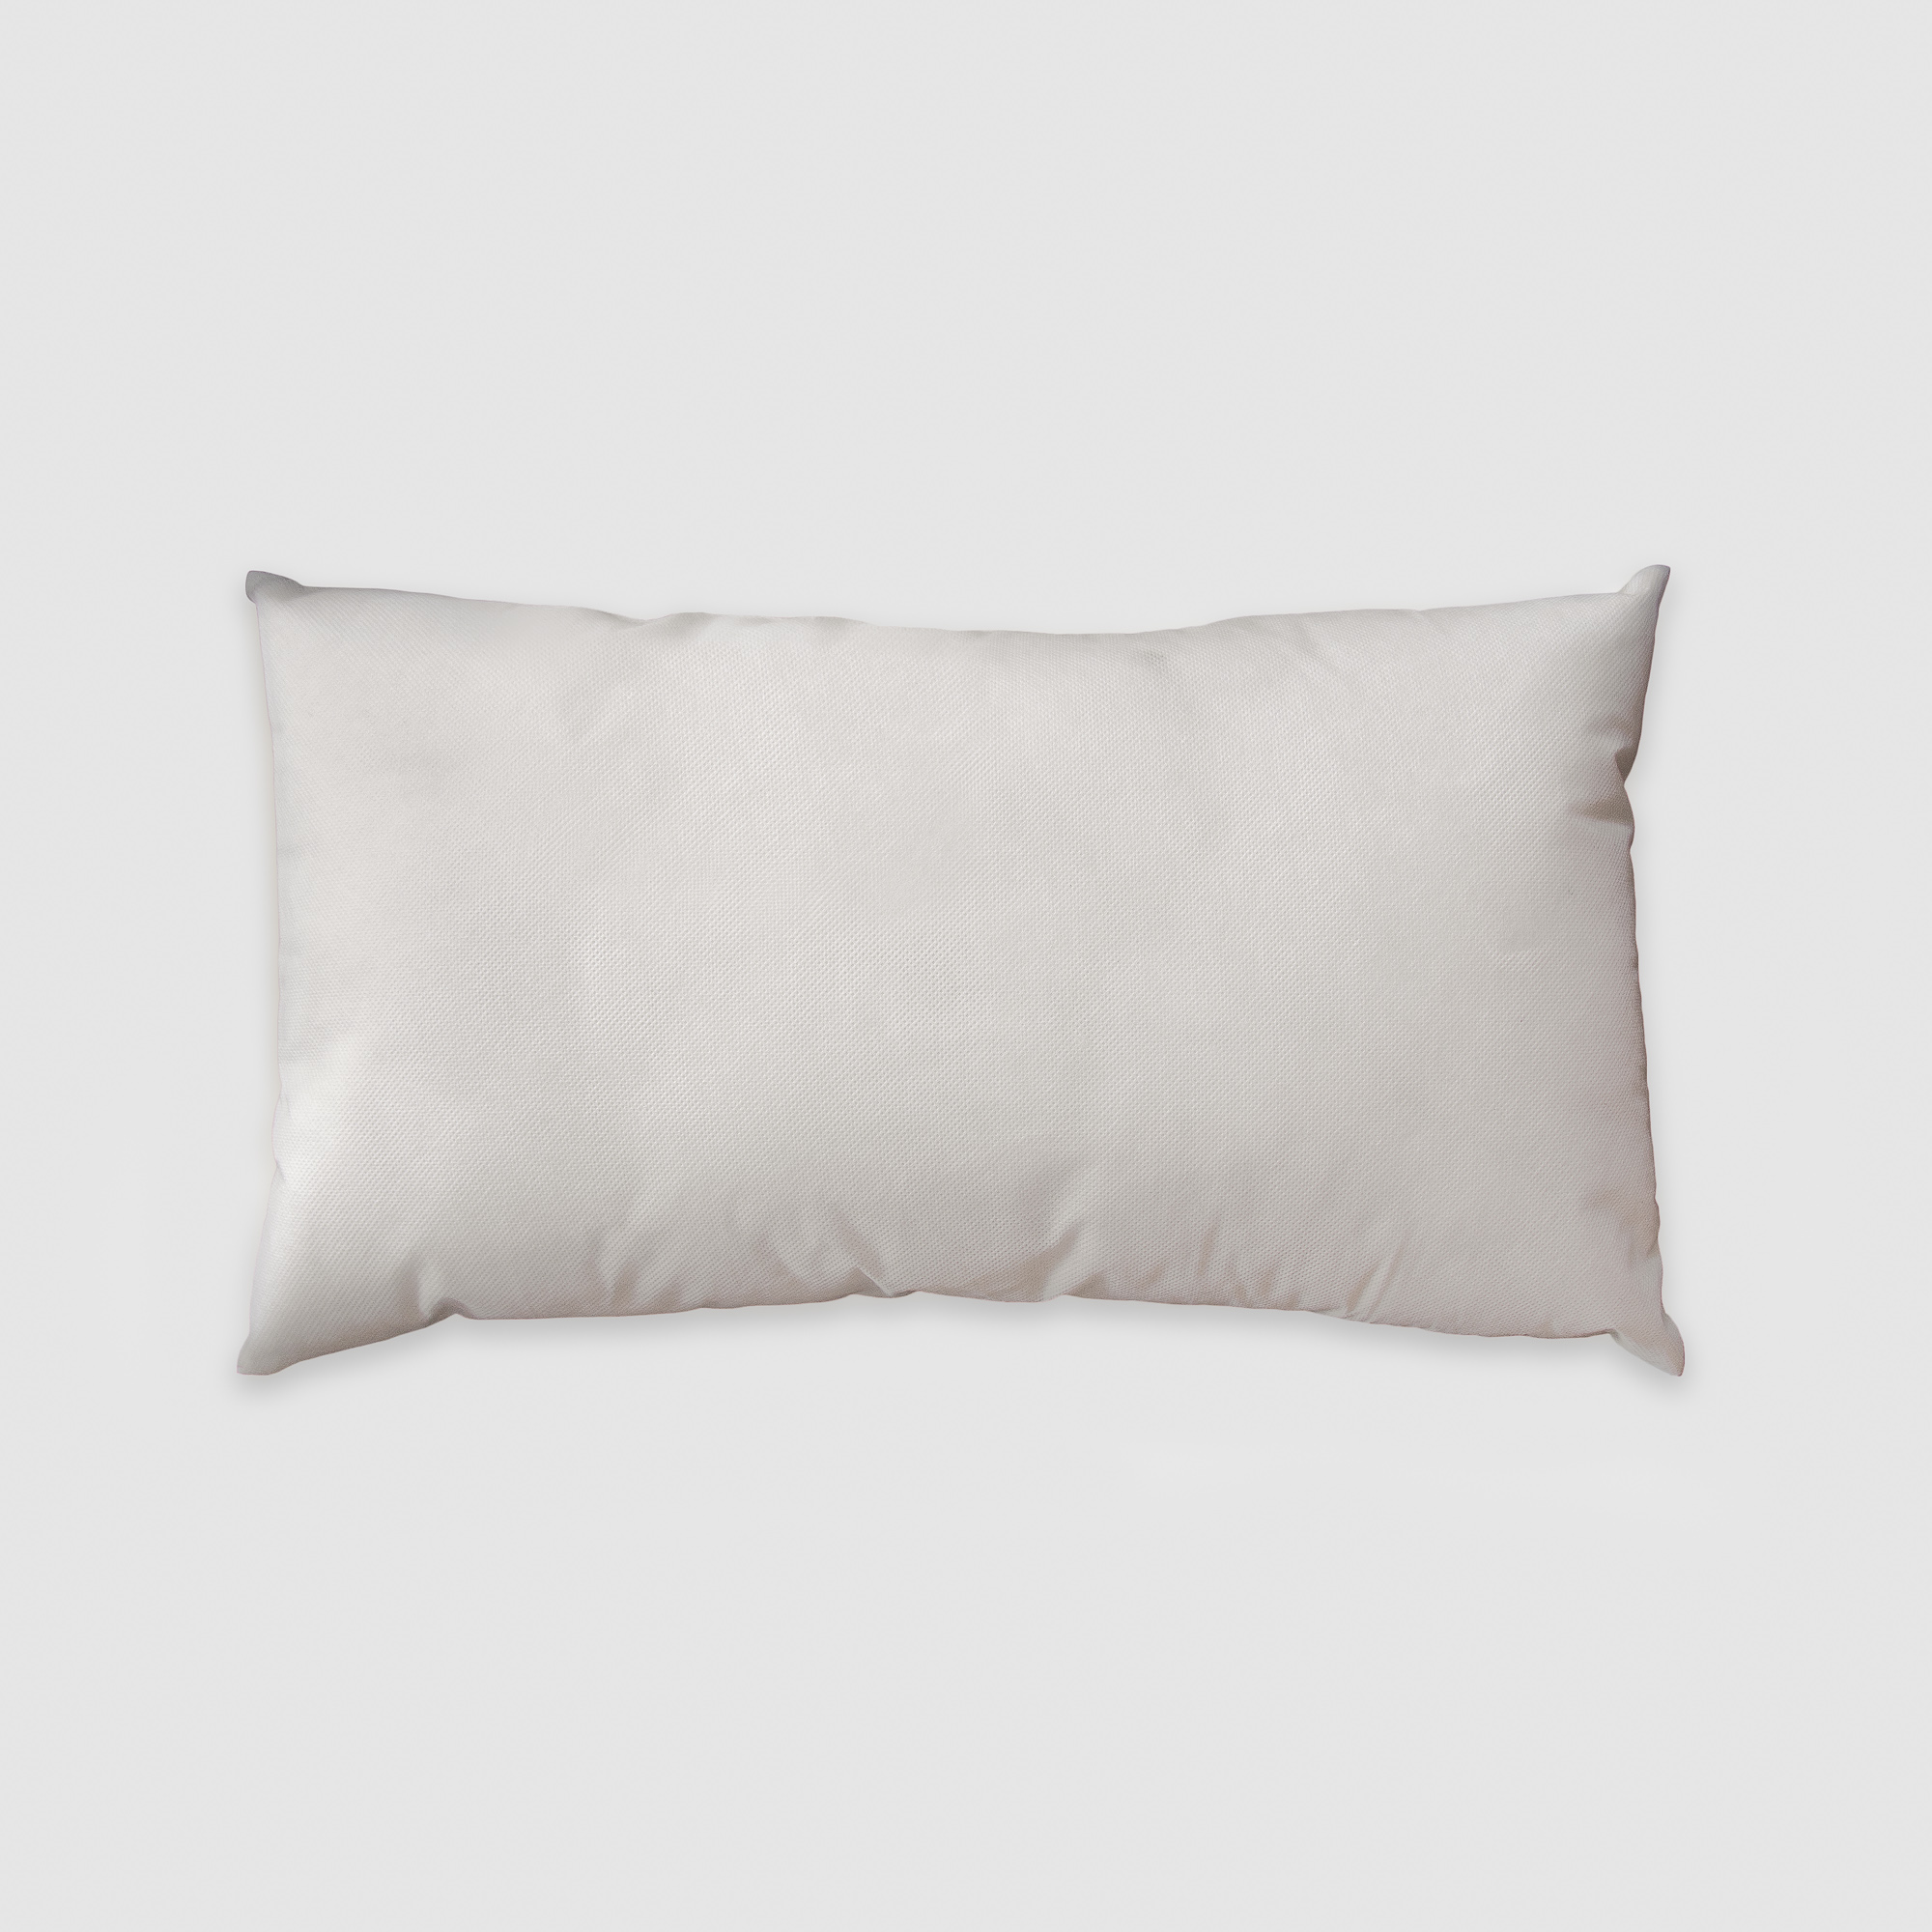 "Filler (14"" x 24"") Suitable for a 12"" X 22"" Cushion Cover"